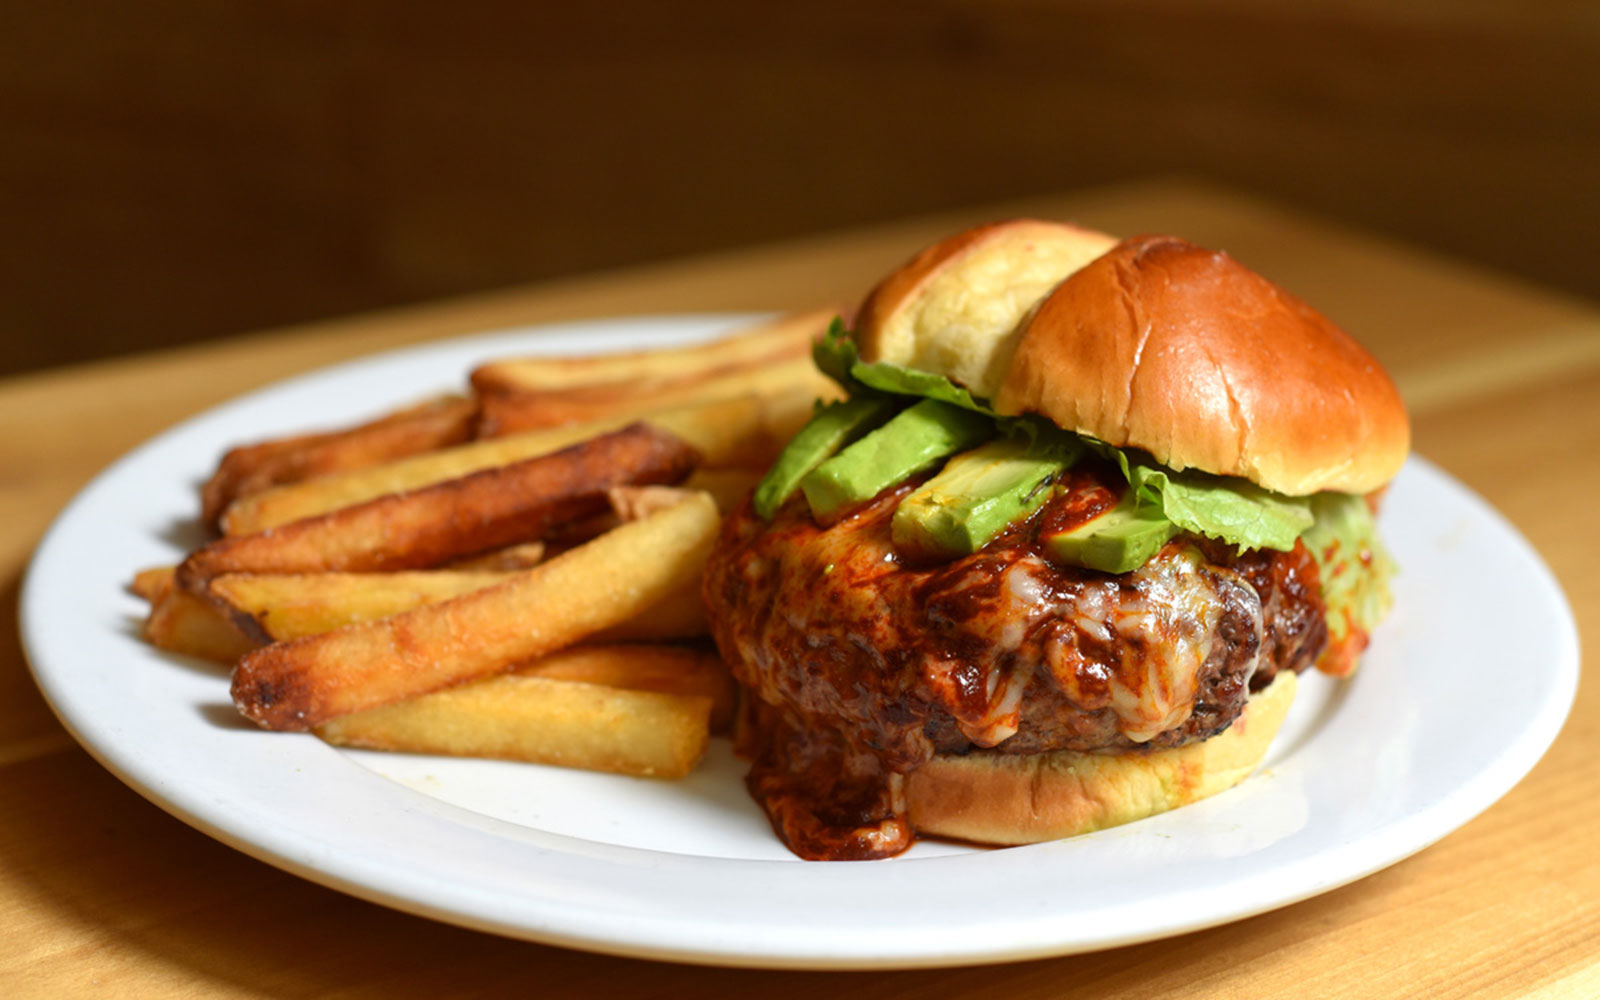 The Cemita Burger ($14) at Javelina